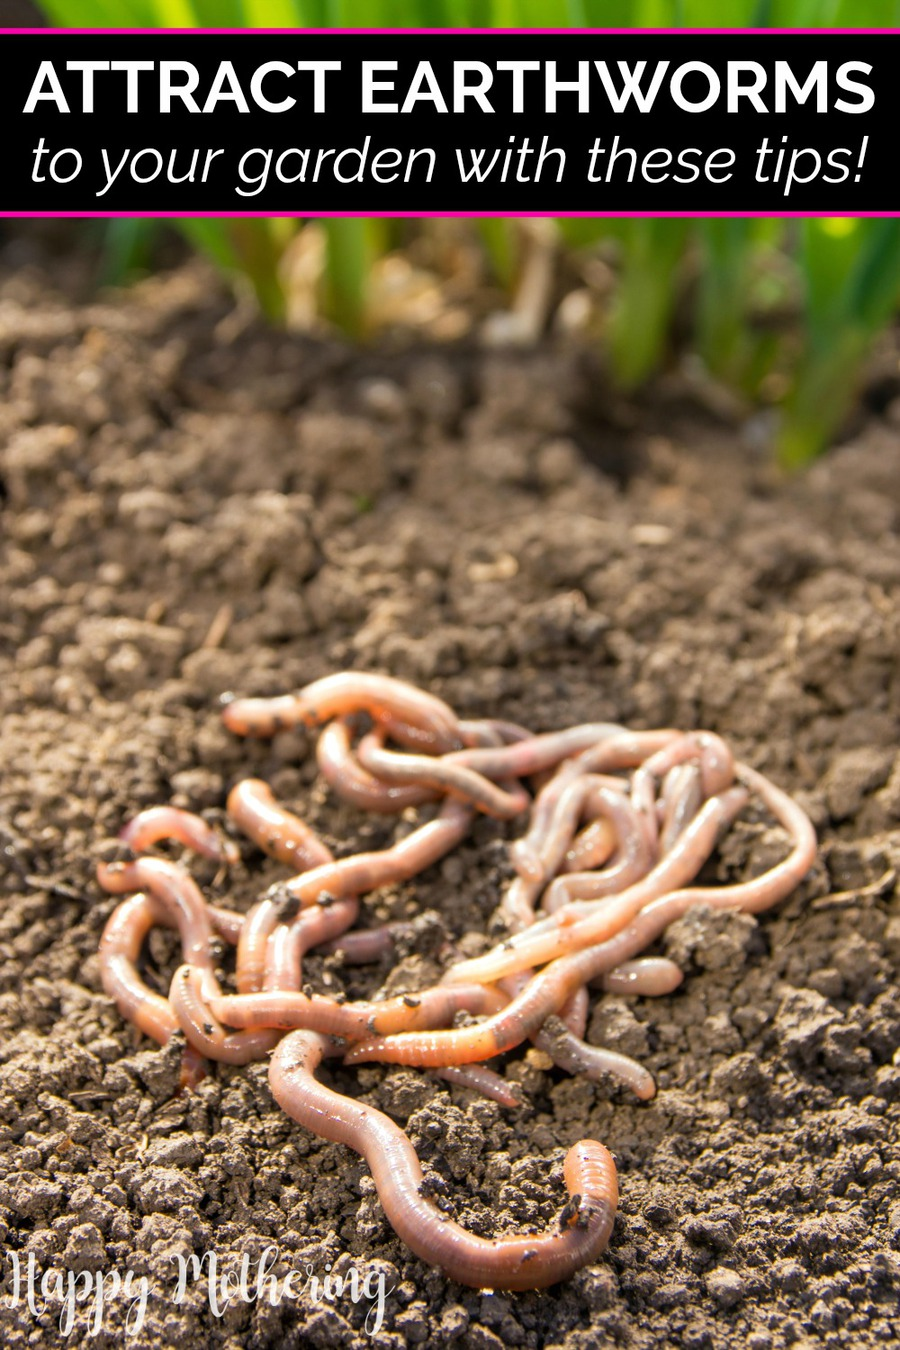 Are you an organic gardener who wants to attract earthworms to your garden? Learn our best tips and tricks for creating a hospitable environment for earth worms.